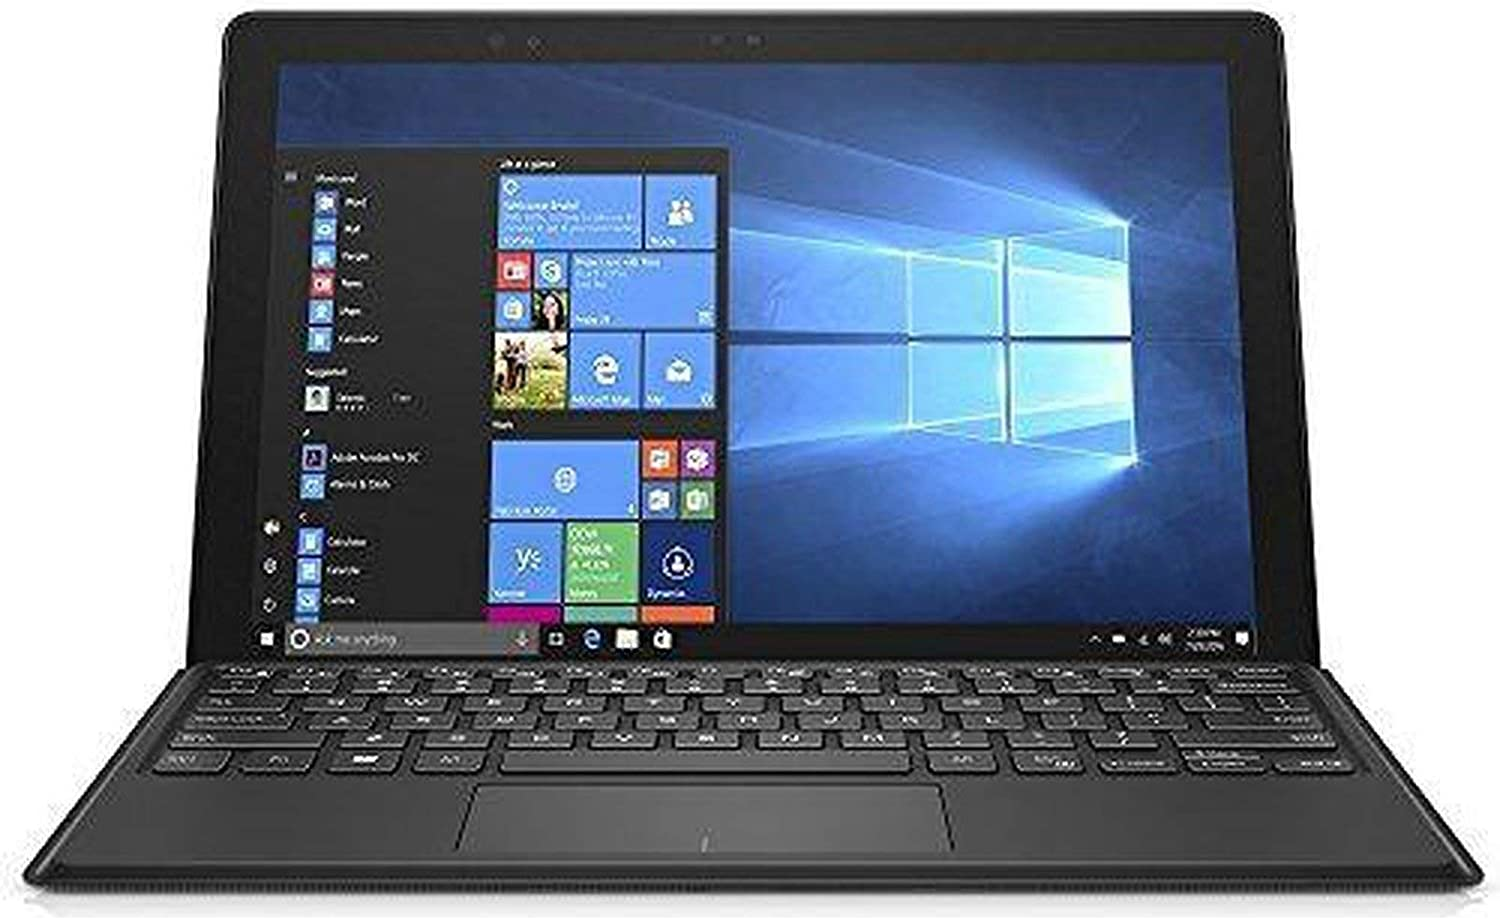 Dell Latitude 5285 2-in-1 FHD 12.3in PC High quality new - Laptop Intel Cor Max 73% OFF Touch